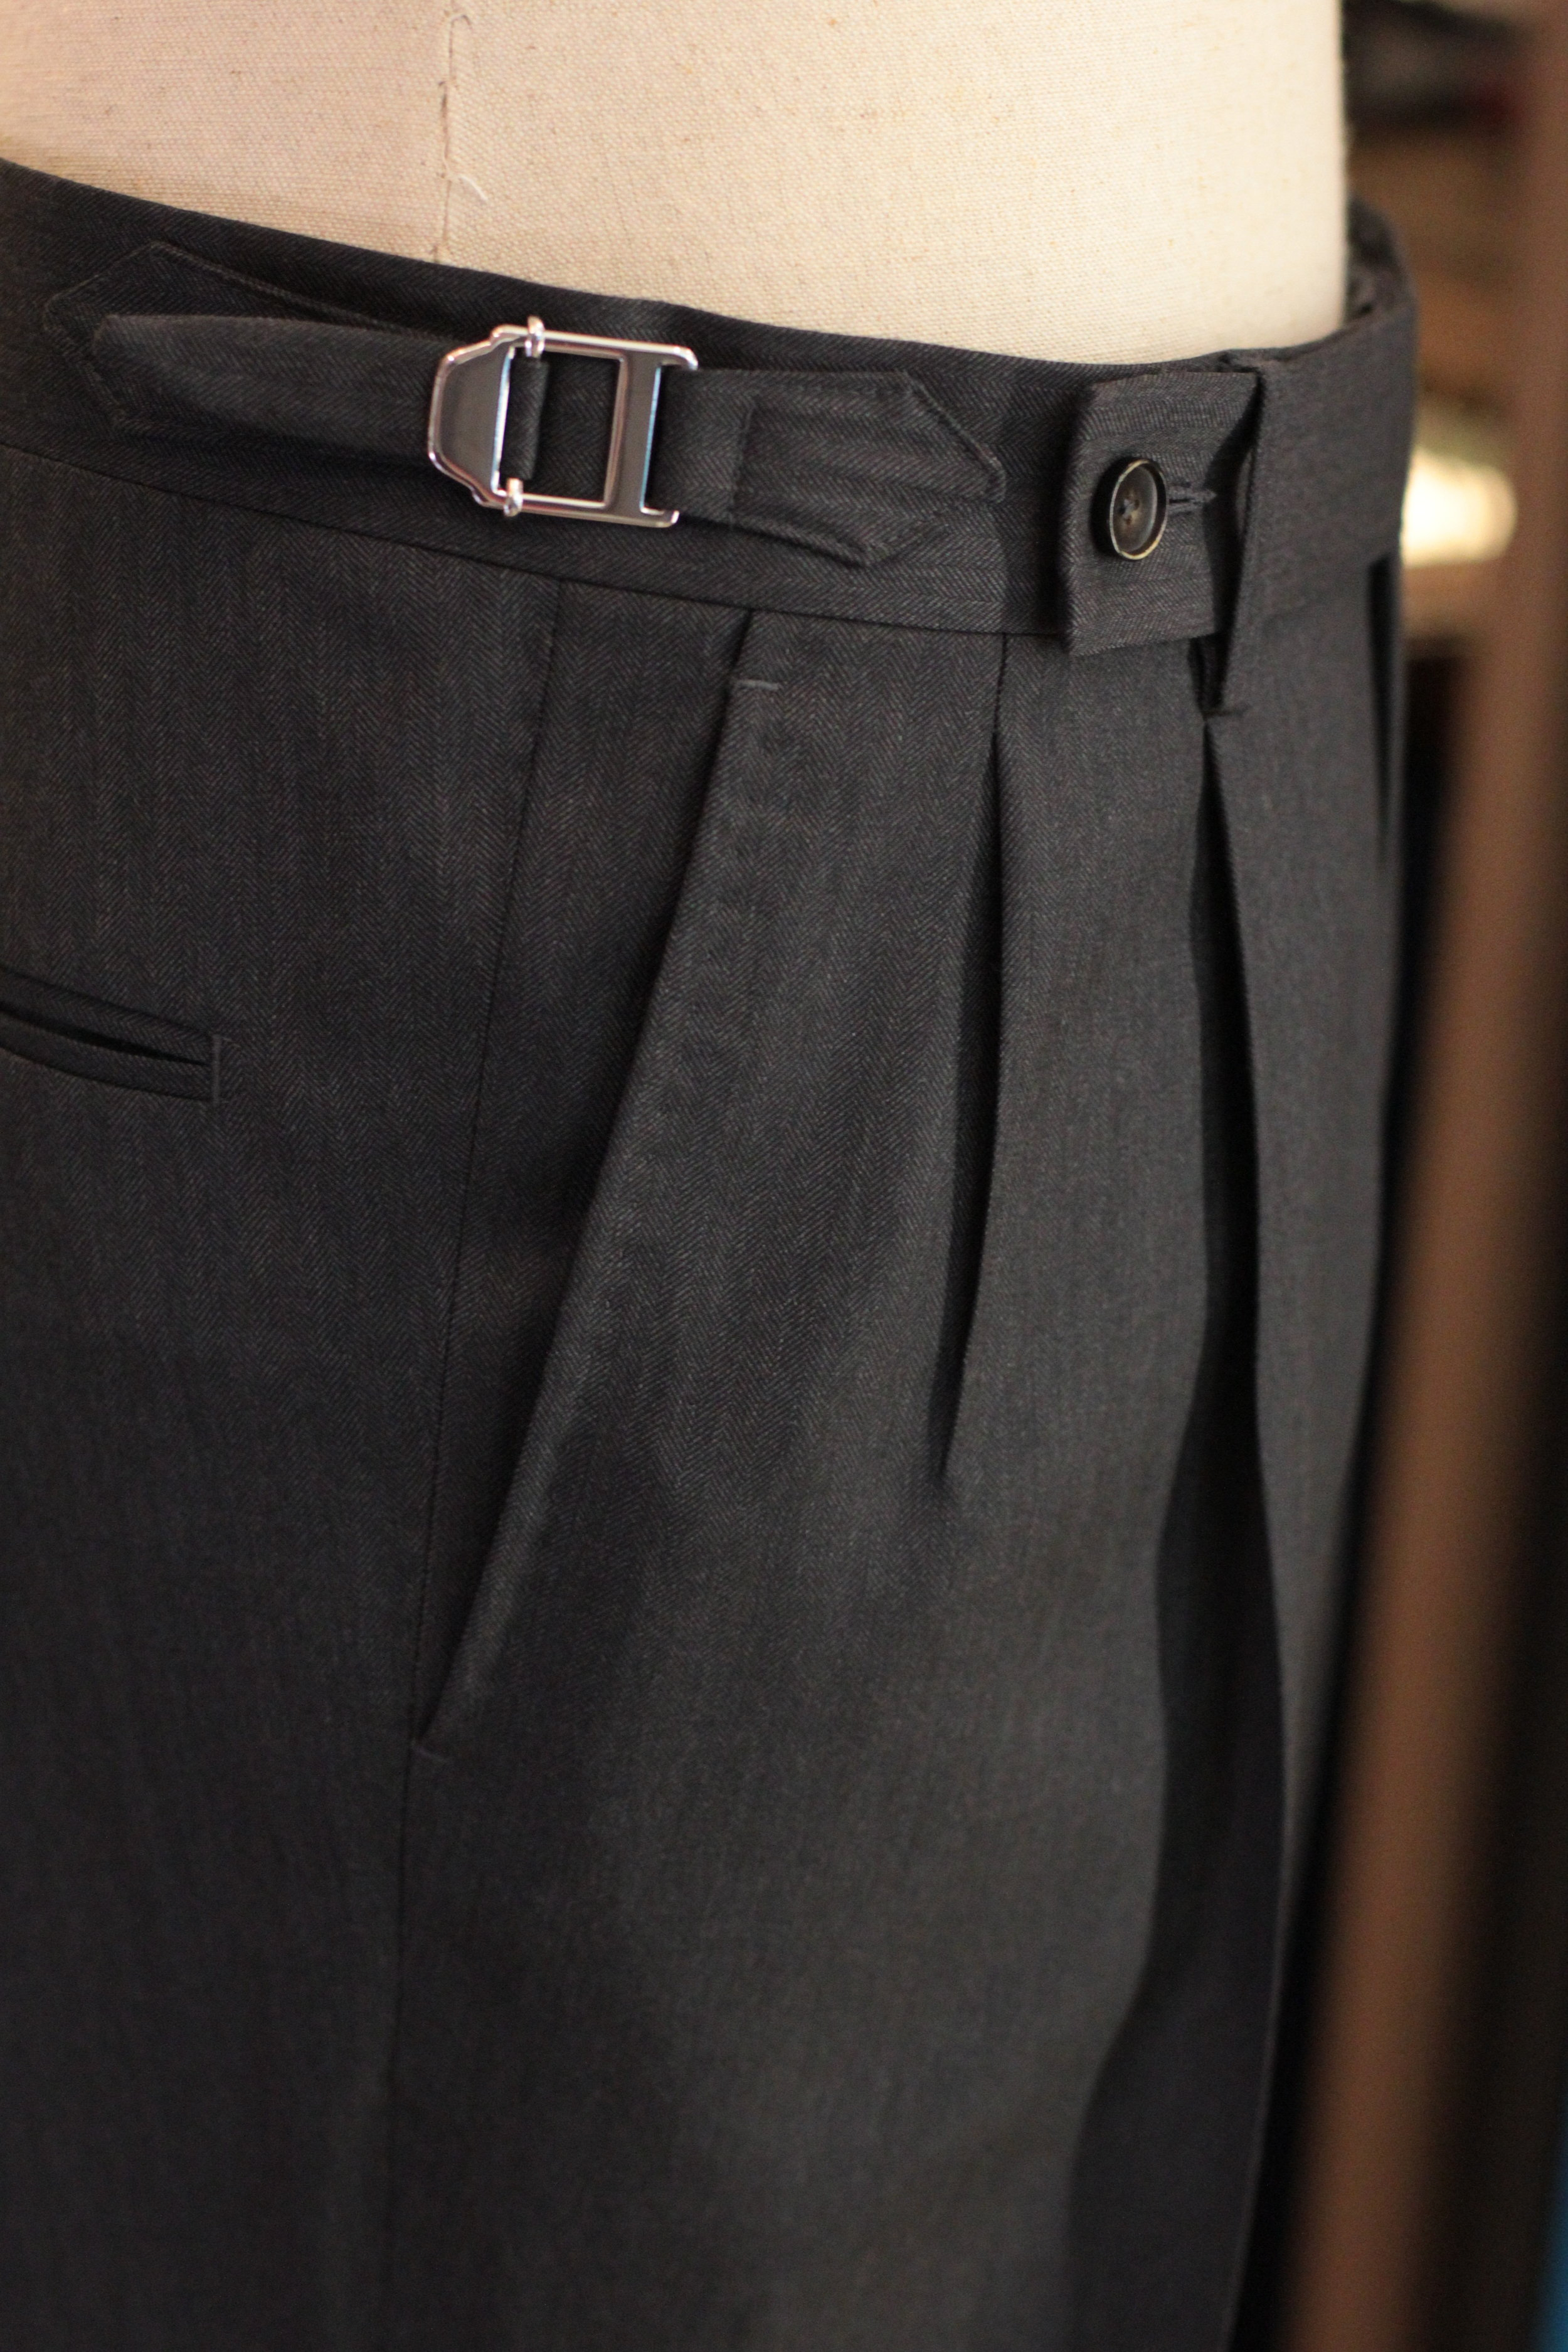 Silver Side Adjusters + Double Pleated Front. for more vintage look.